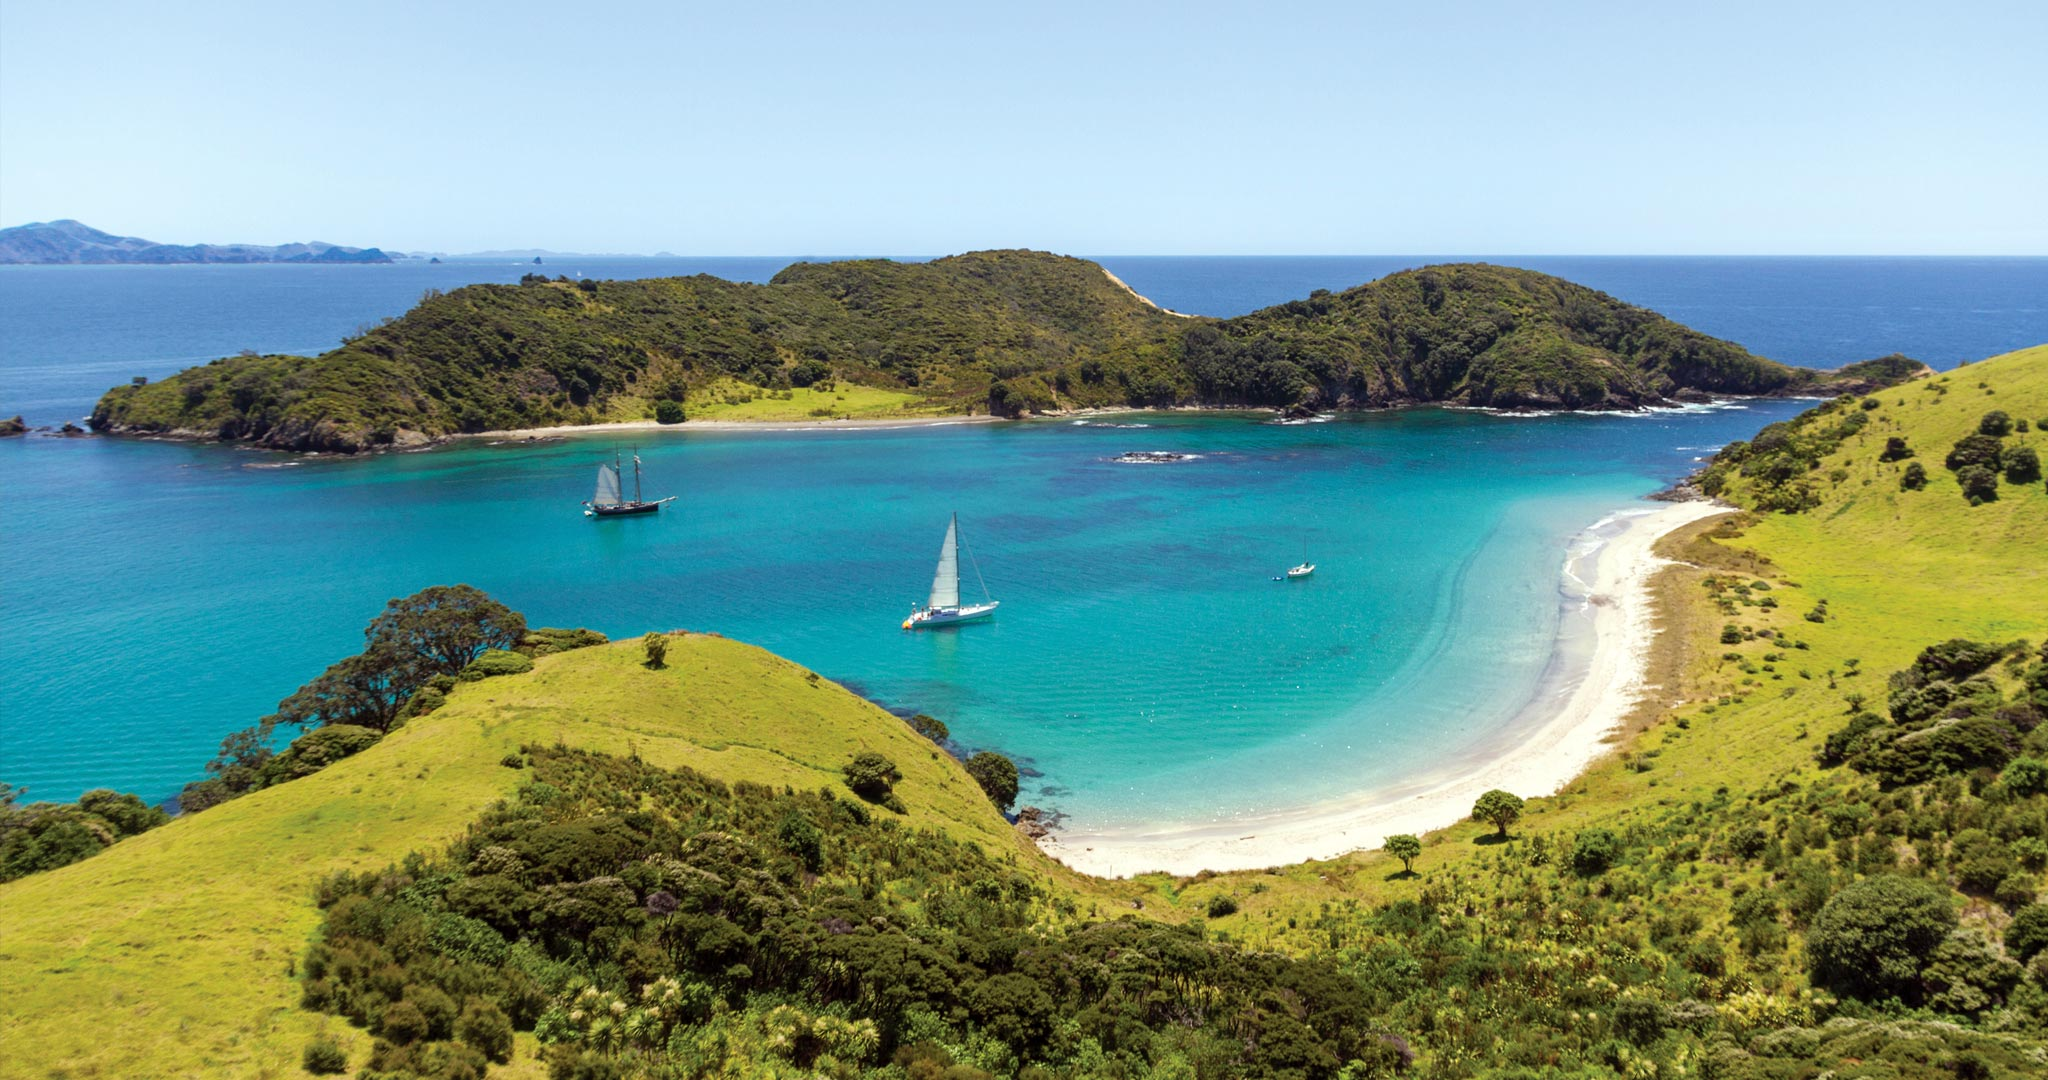 Bay of Islands: Hidden gems, things to do